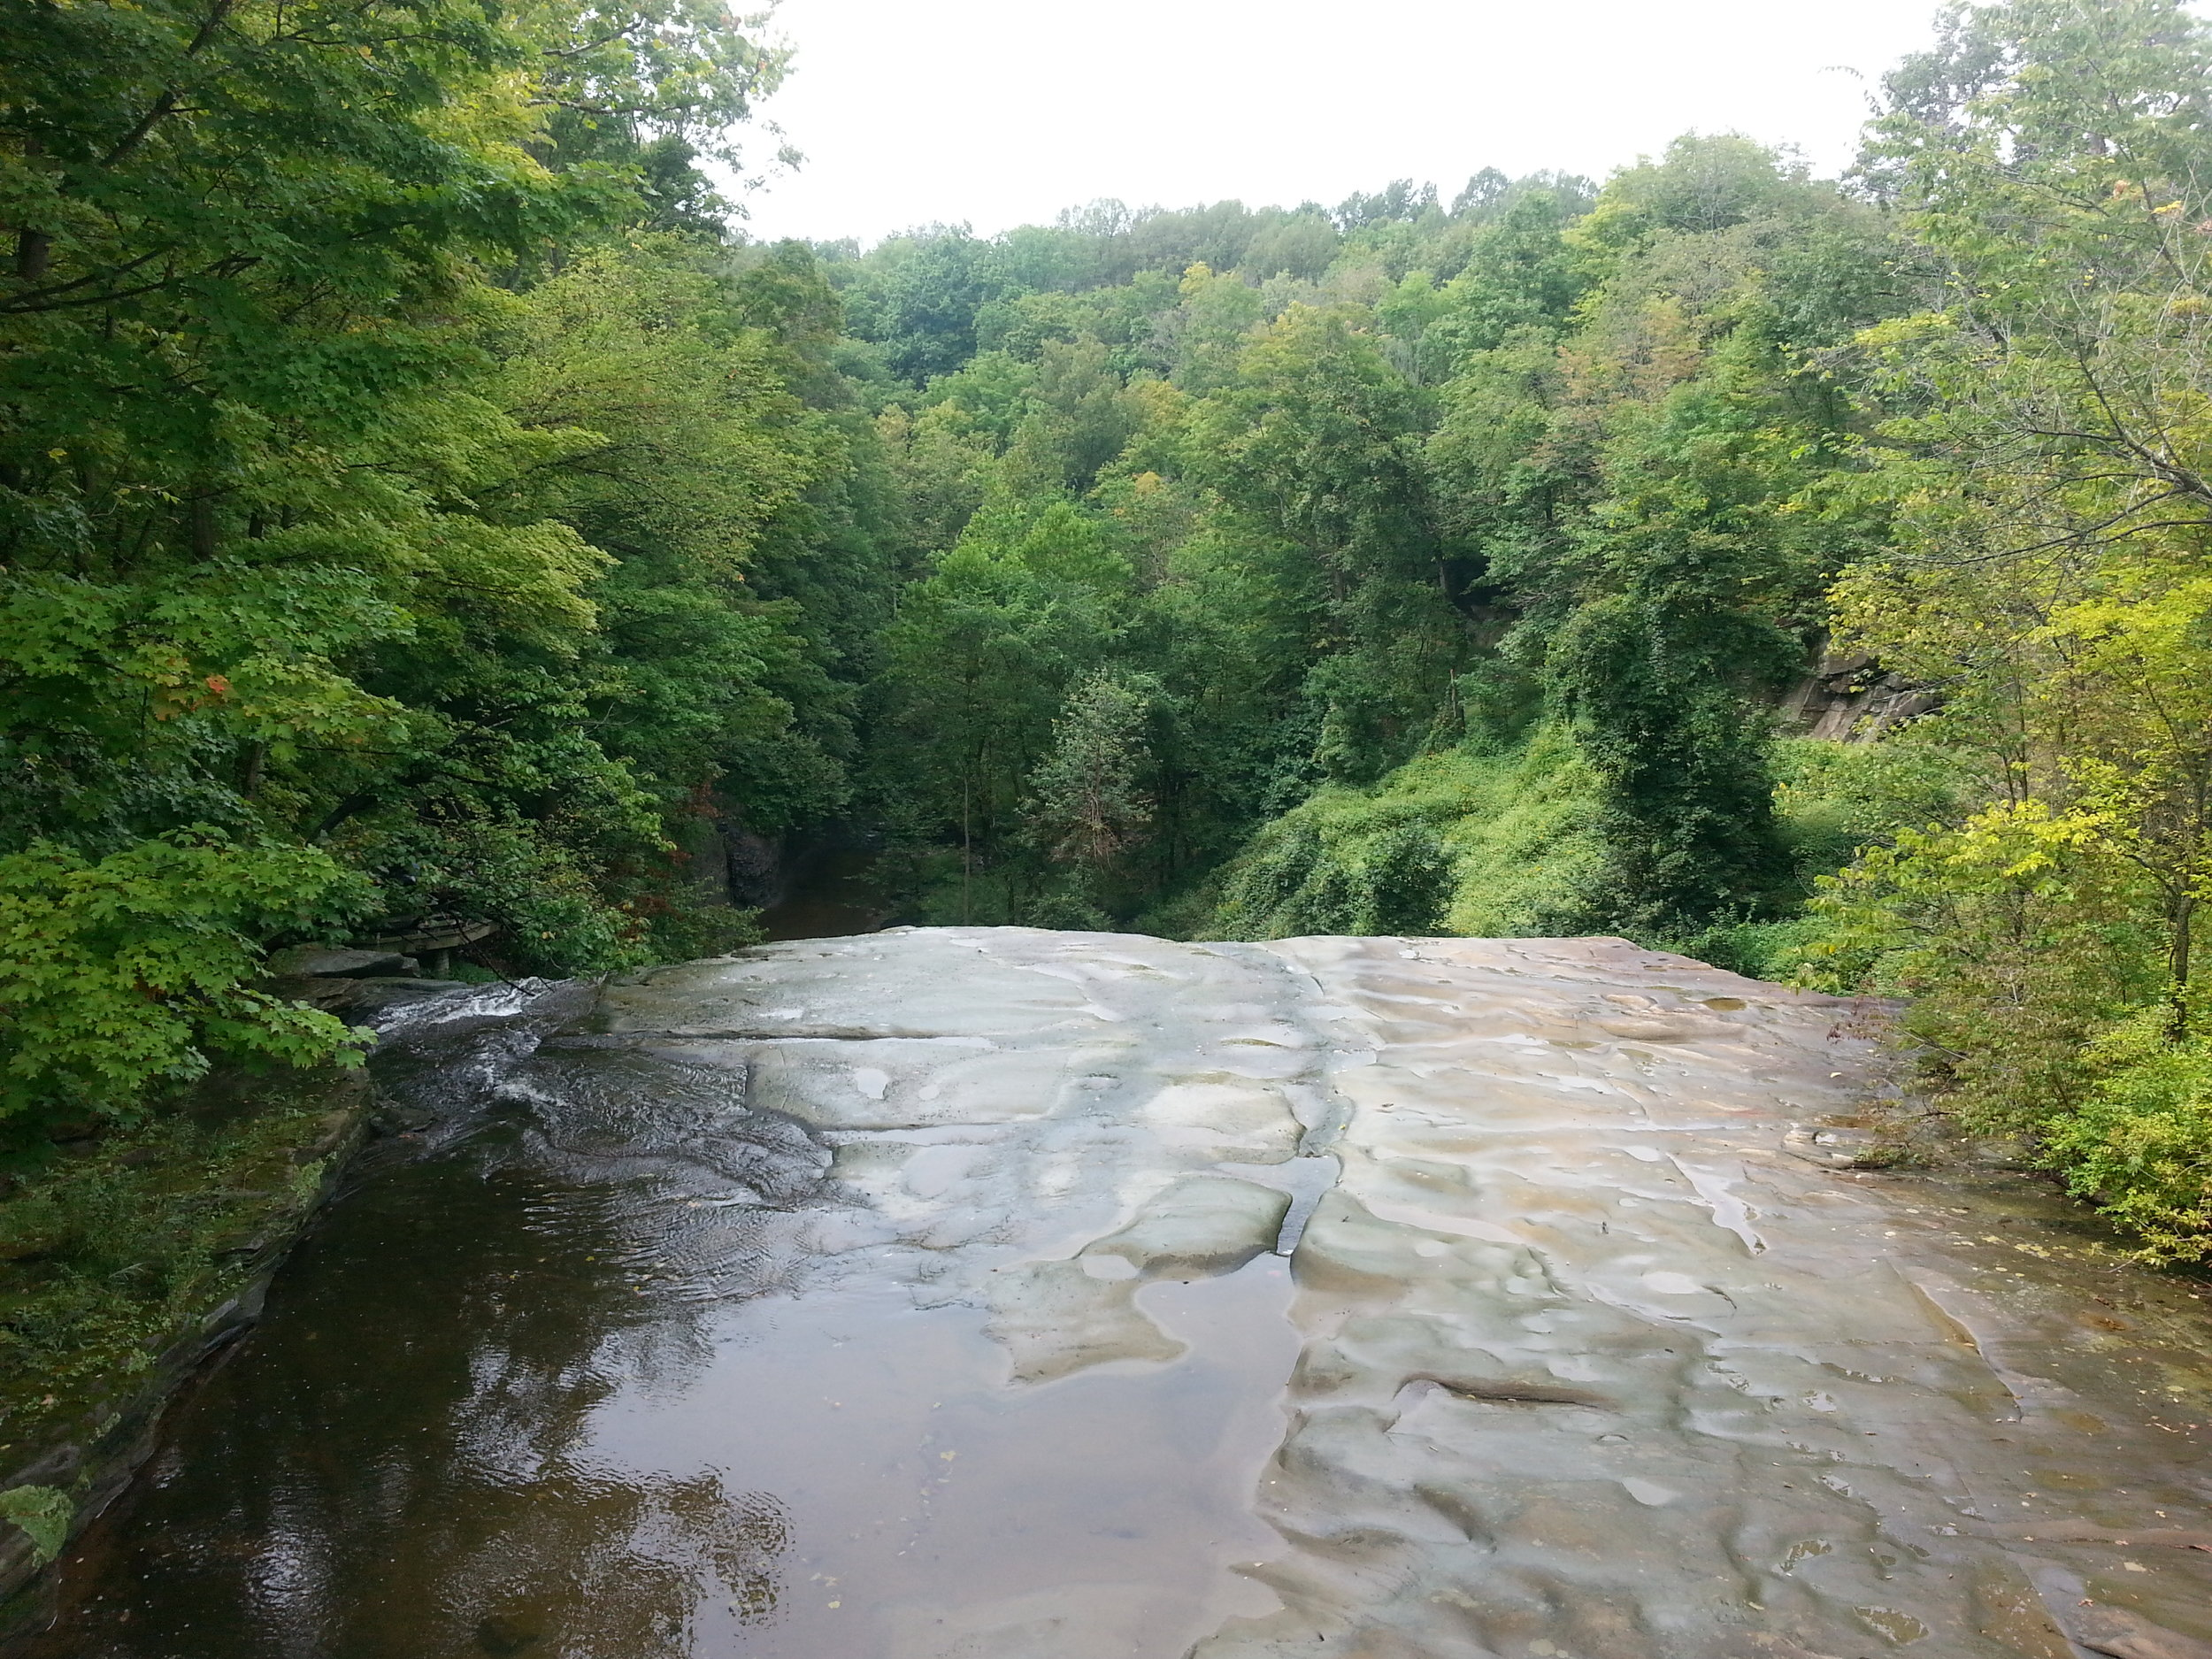 The view from behind Brandywine Falls. This portion of the trail has since been closed.